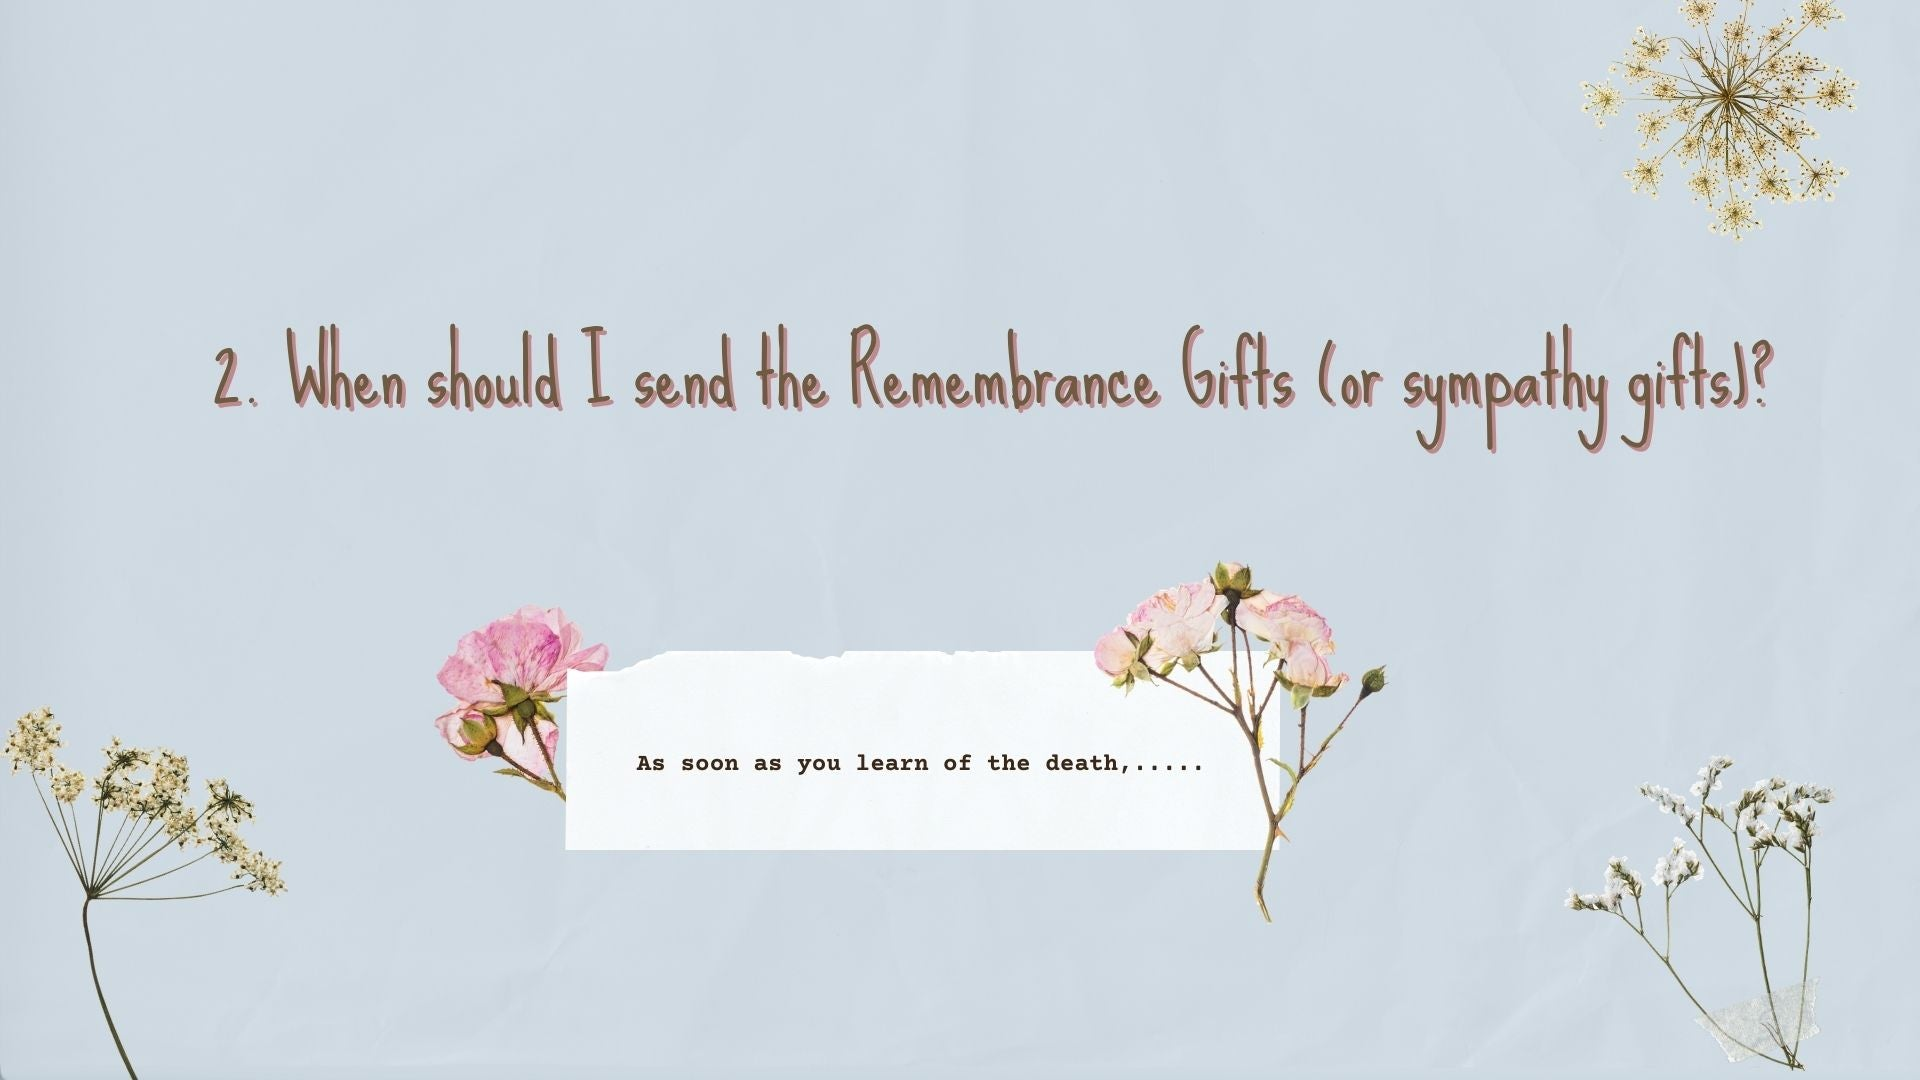 When should I send the Remembrance Gifts (or sympathy gifts)?